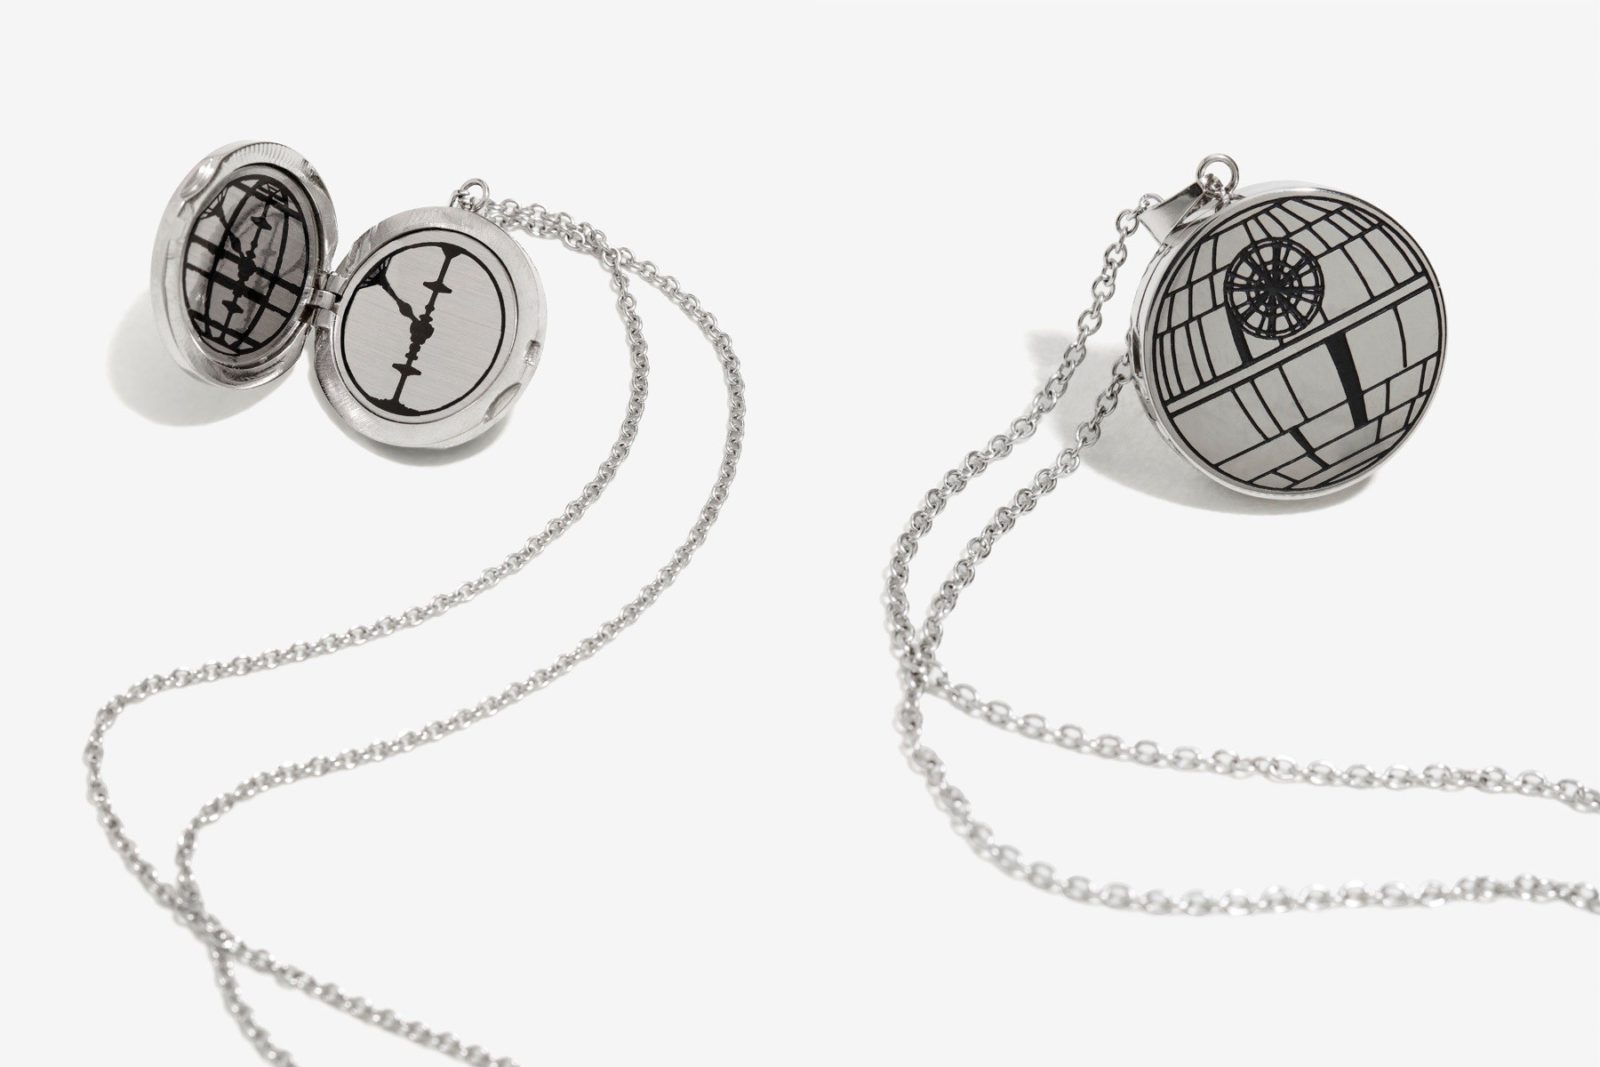 New Rogue One Death Star locket necklace